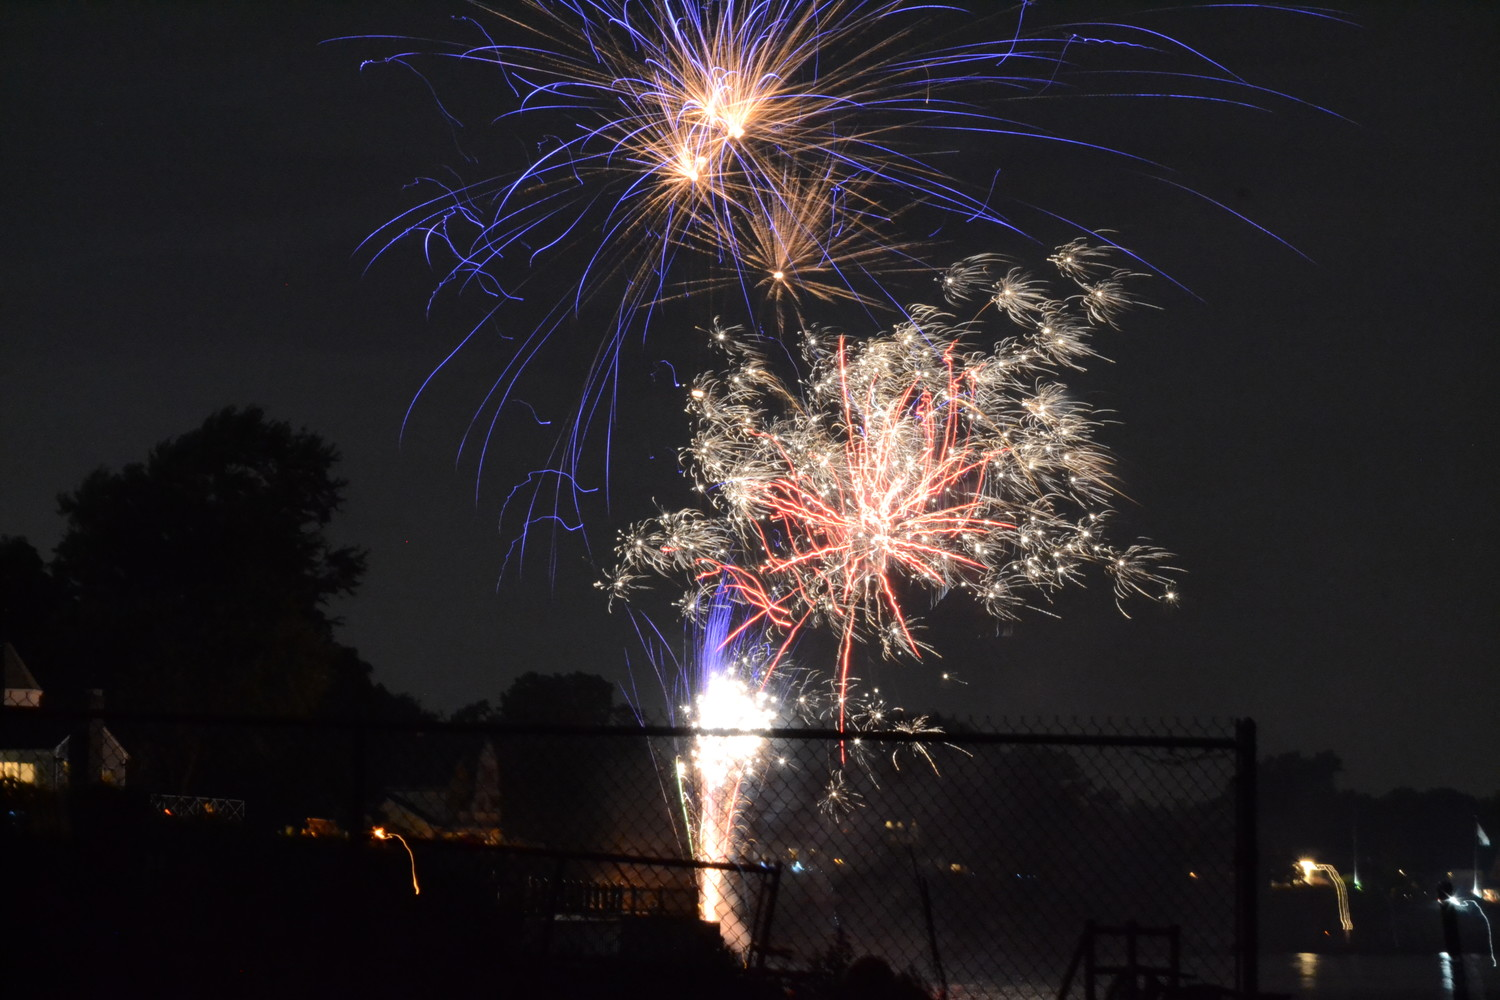 More photos from fireworks displays set off on July 3 in Conimicut.